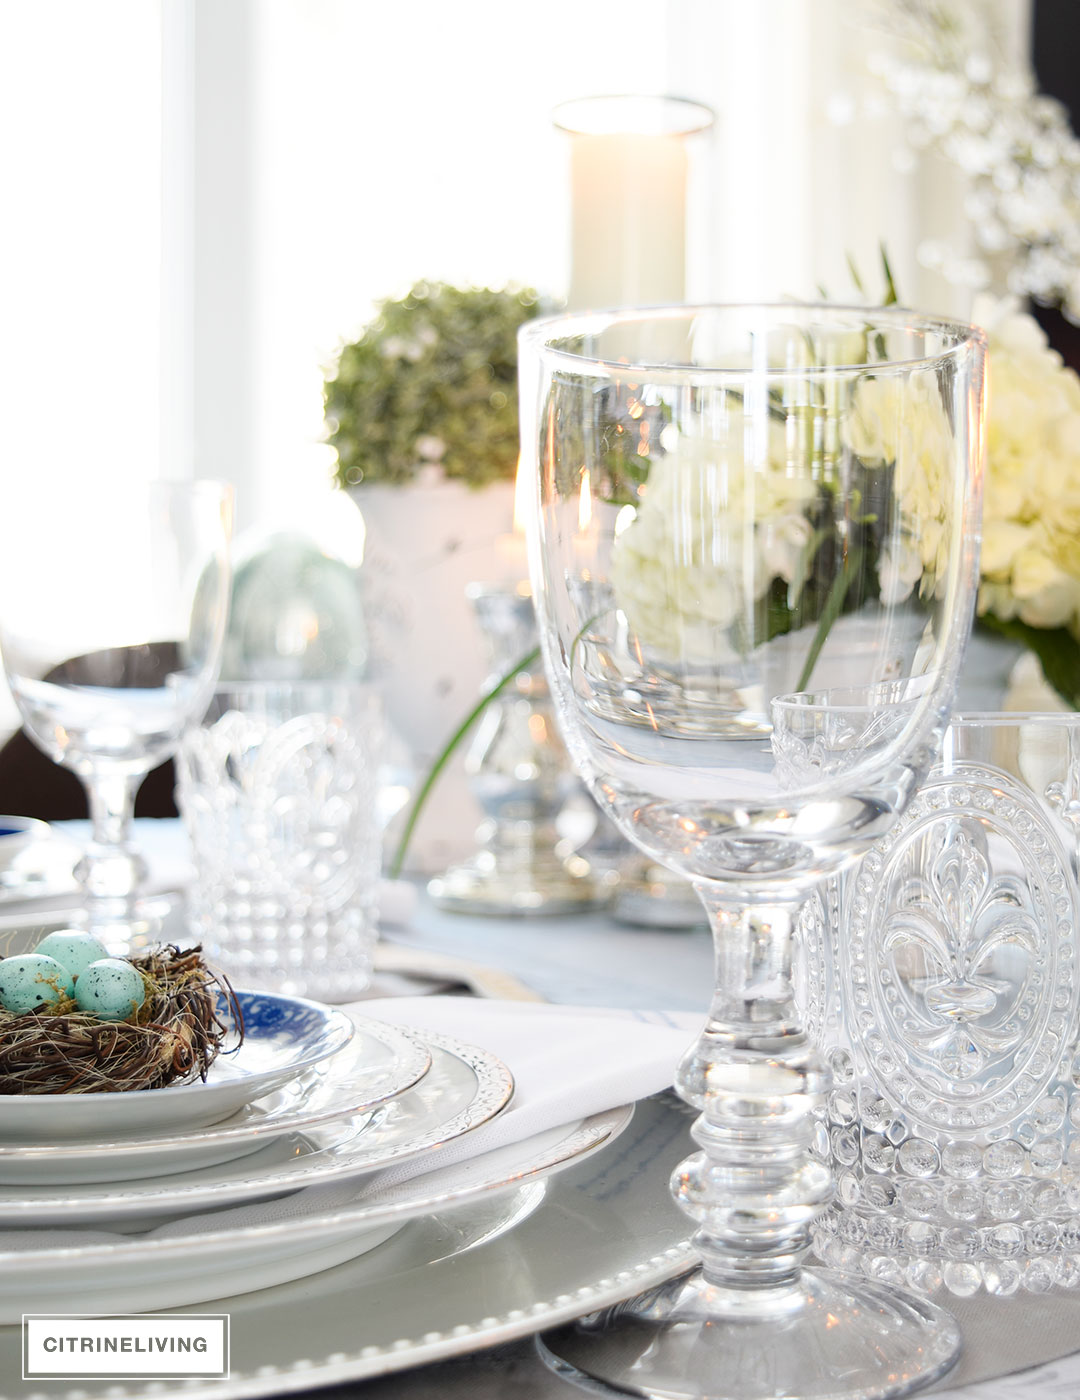 Fleur De Lys glasses and stemmed water goblets add sparkle to this elegant Easter tablescape.